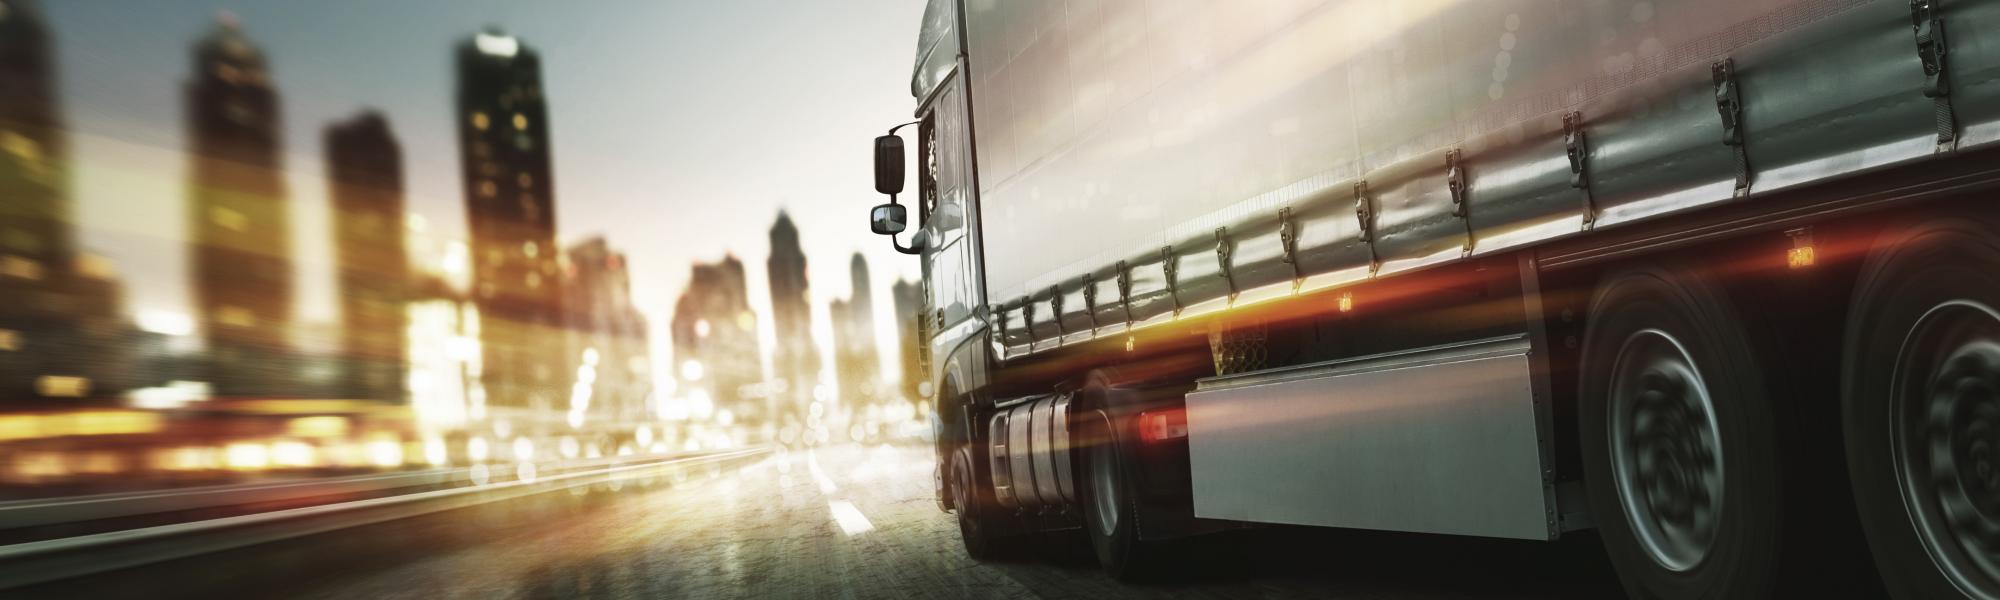 Cities urged to exempt commercial vehicles from access restrictions